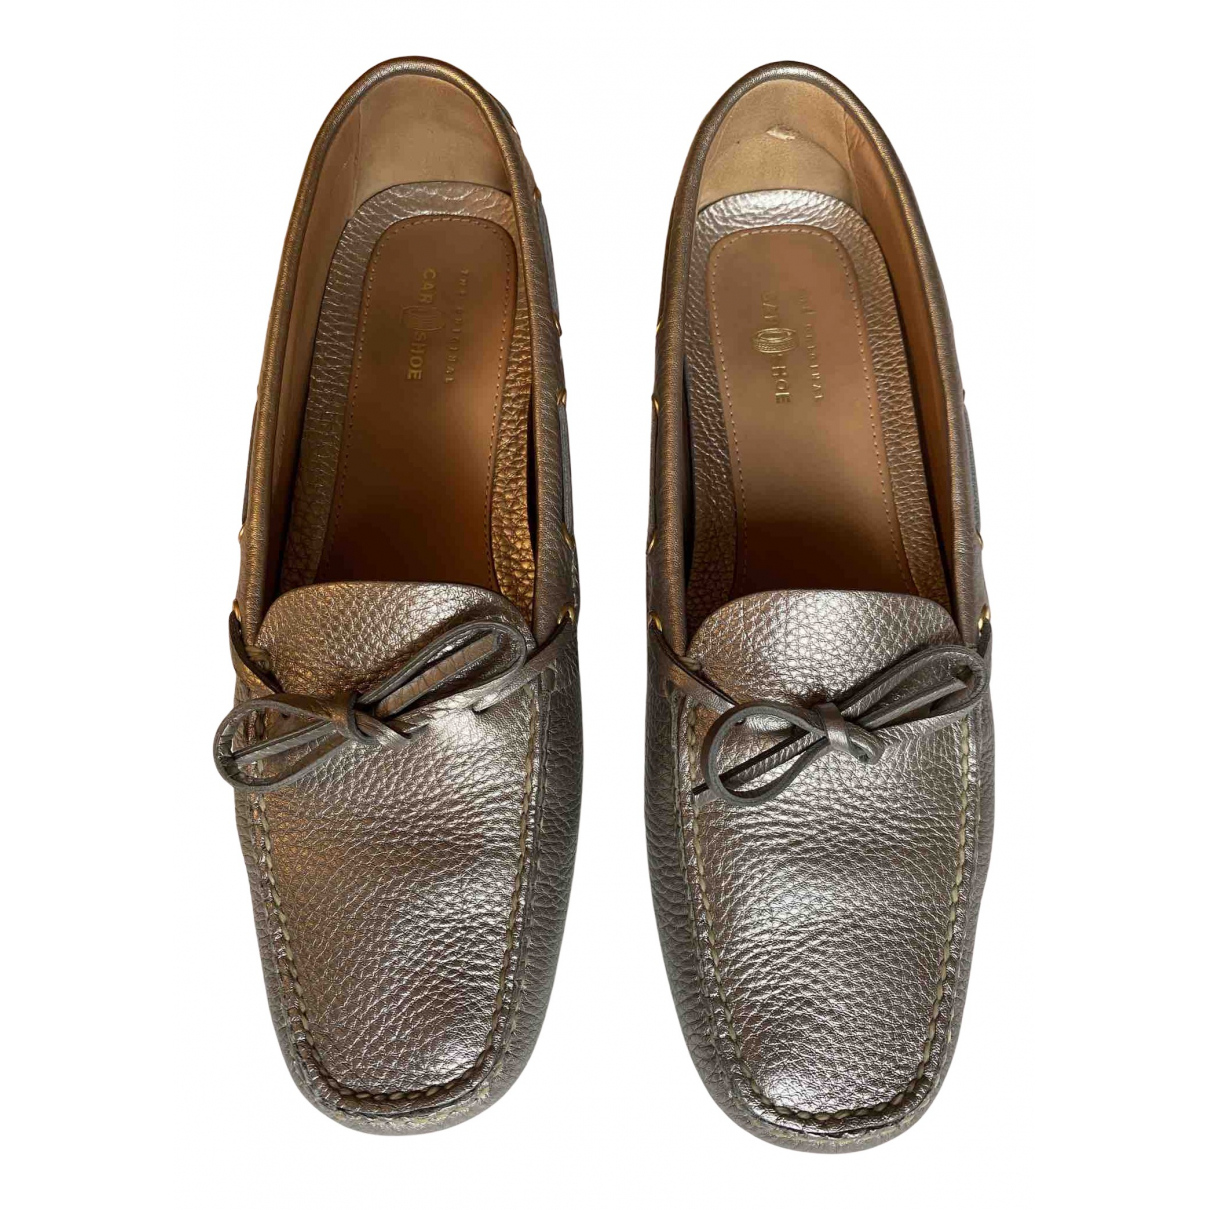 Carshoe N Silver Leather Flats for Women 40 EU